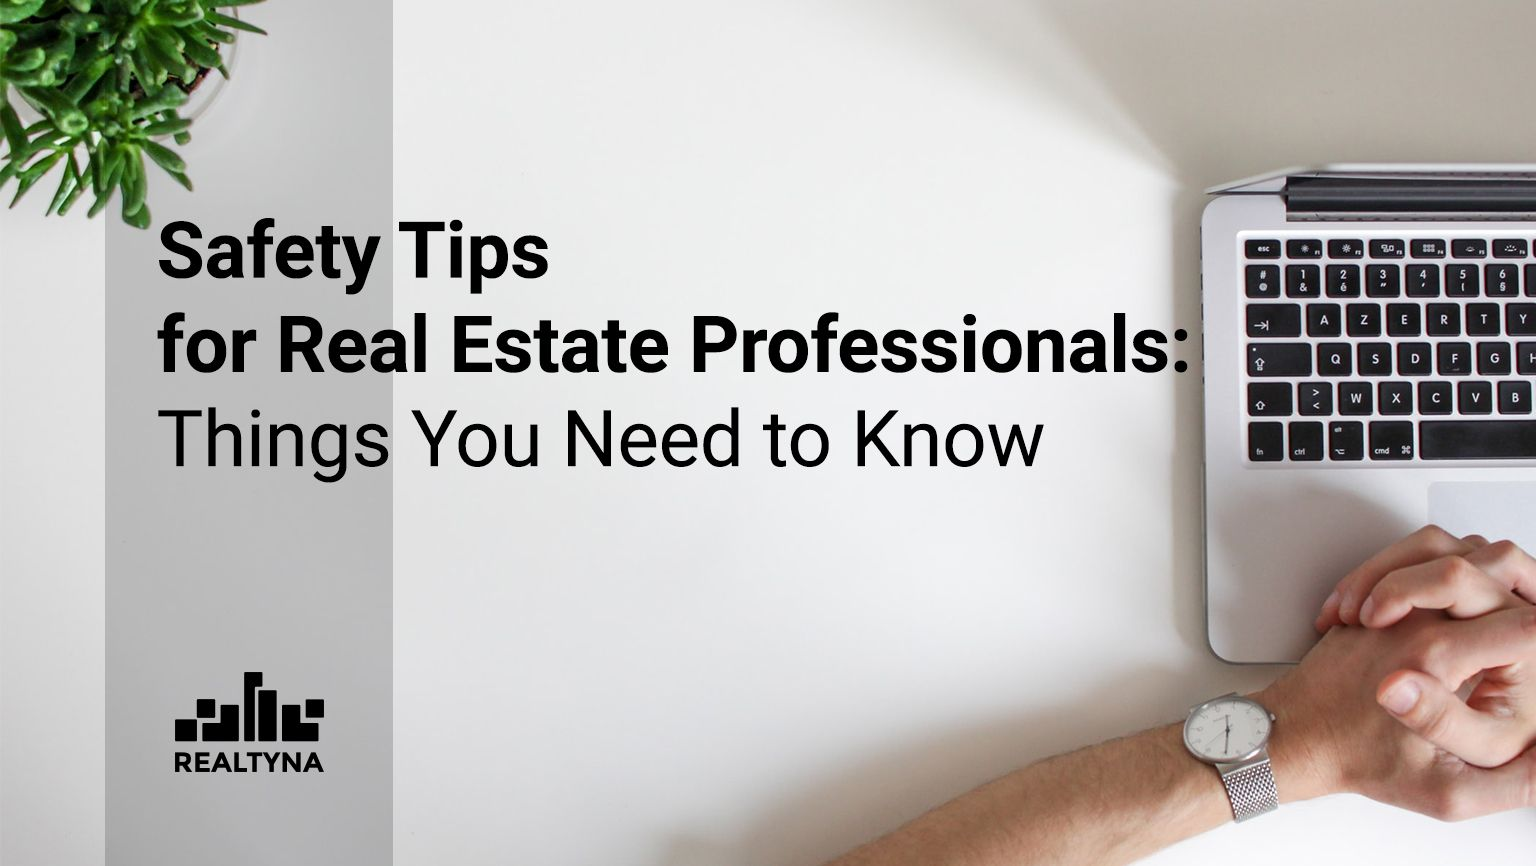 Safety Tips for Real Estate Professionals: Things You Need to Know